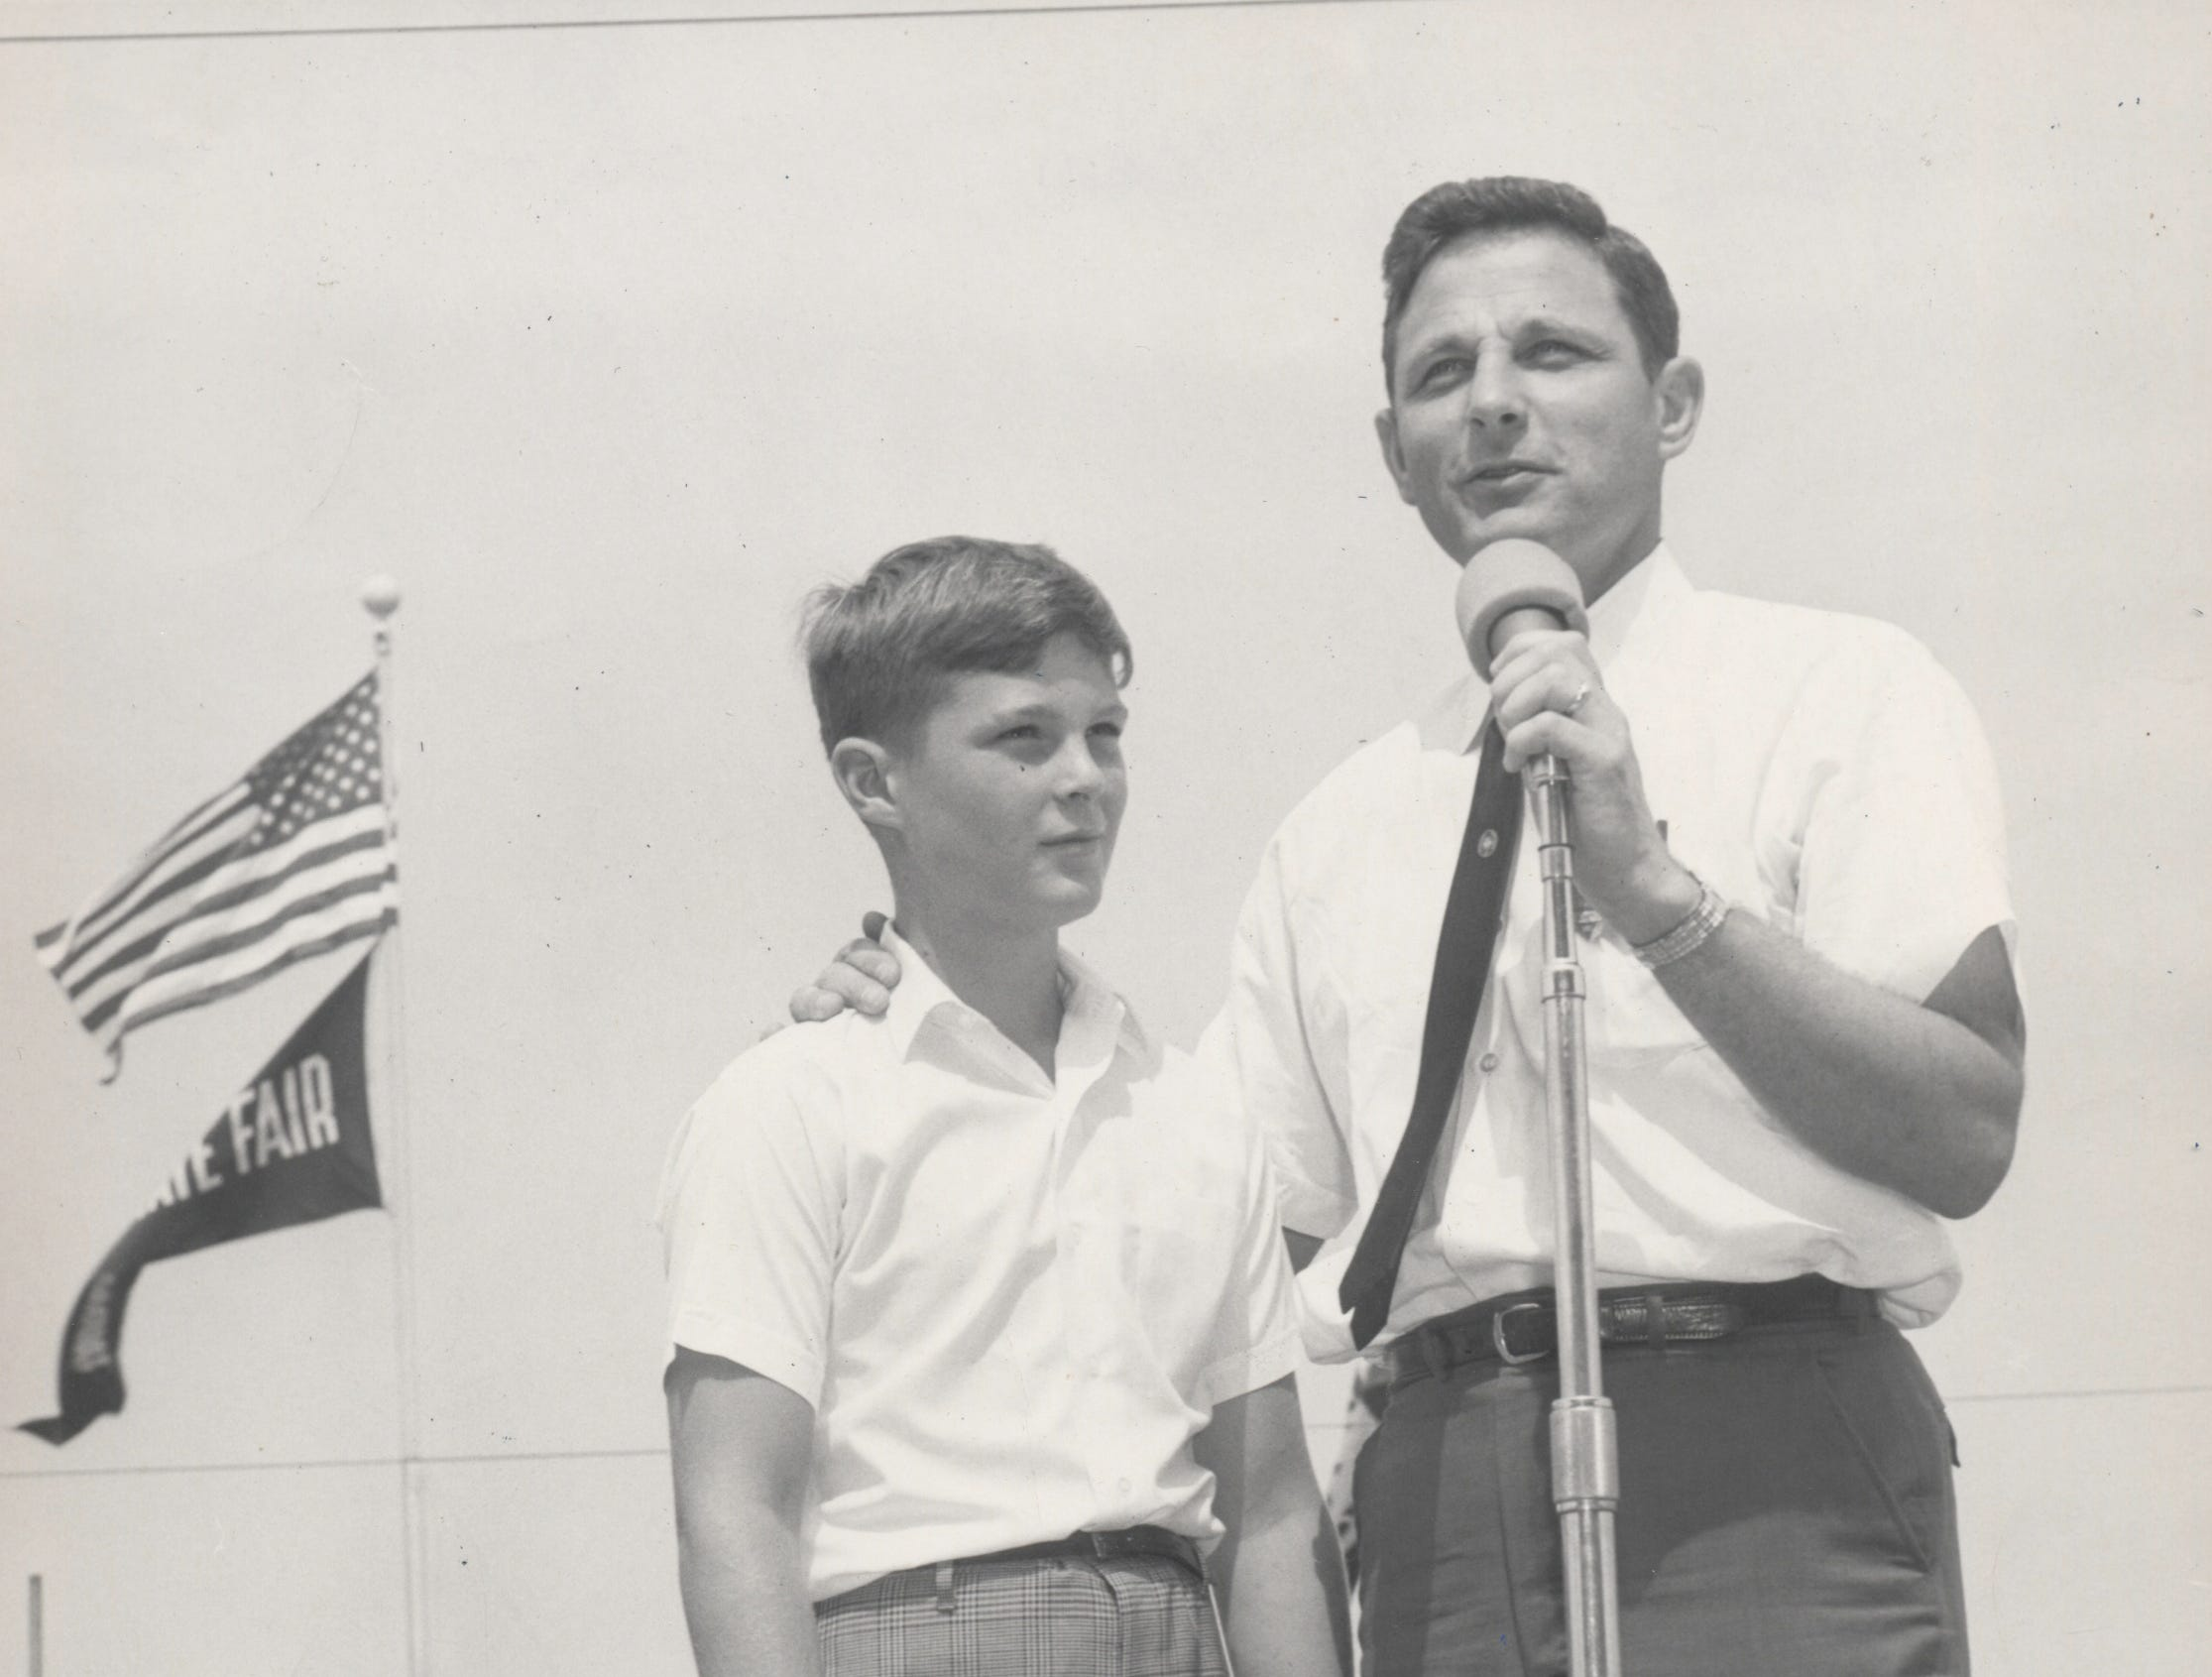 Sen Birch Bayh and his 12-year old son, Evan Bayh at the Indiana State Fair in 1968.